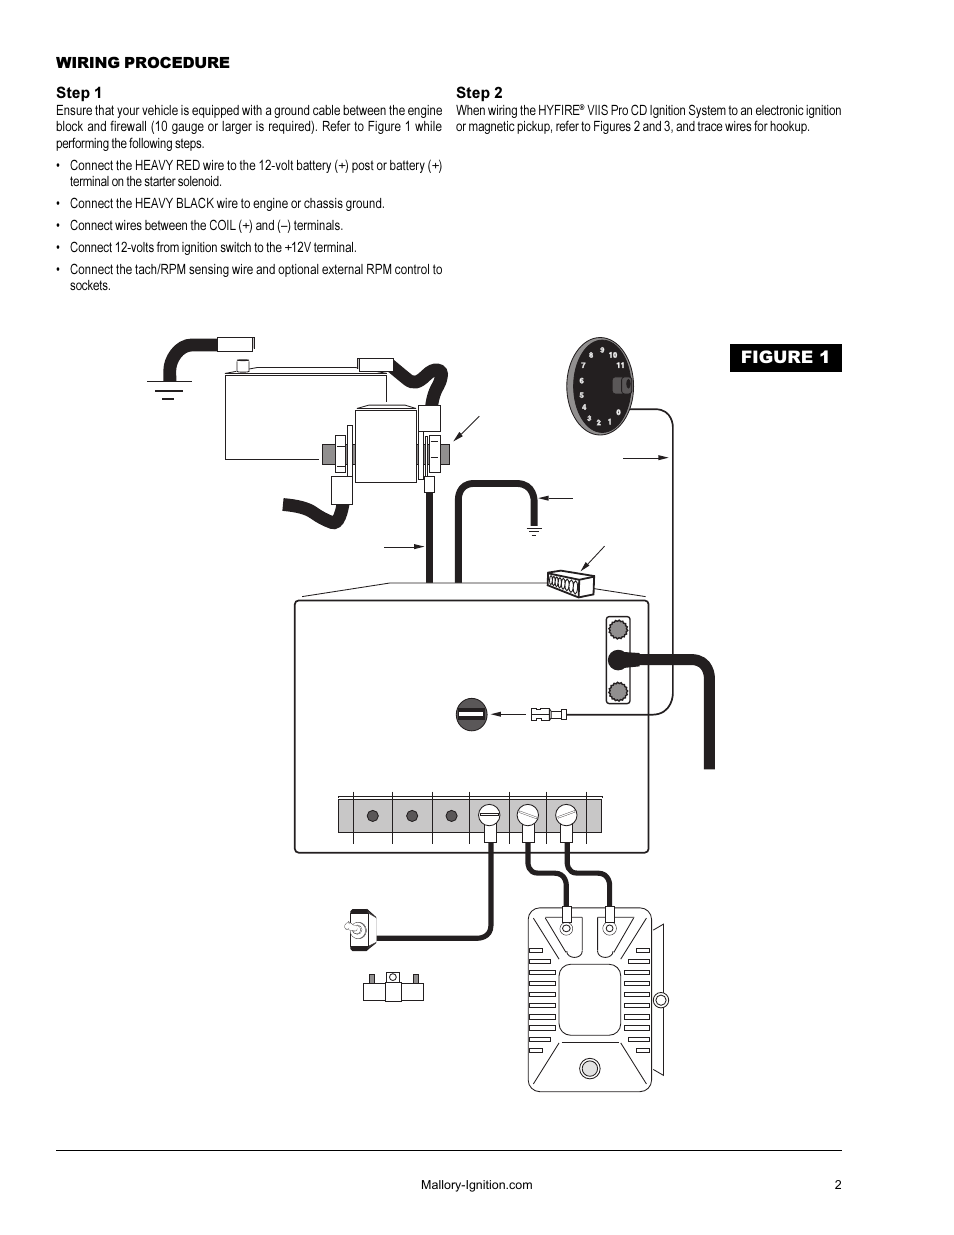 Mallory Pro Comp Ignition Wiring Diagram | Wiring Liry on